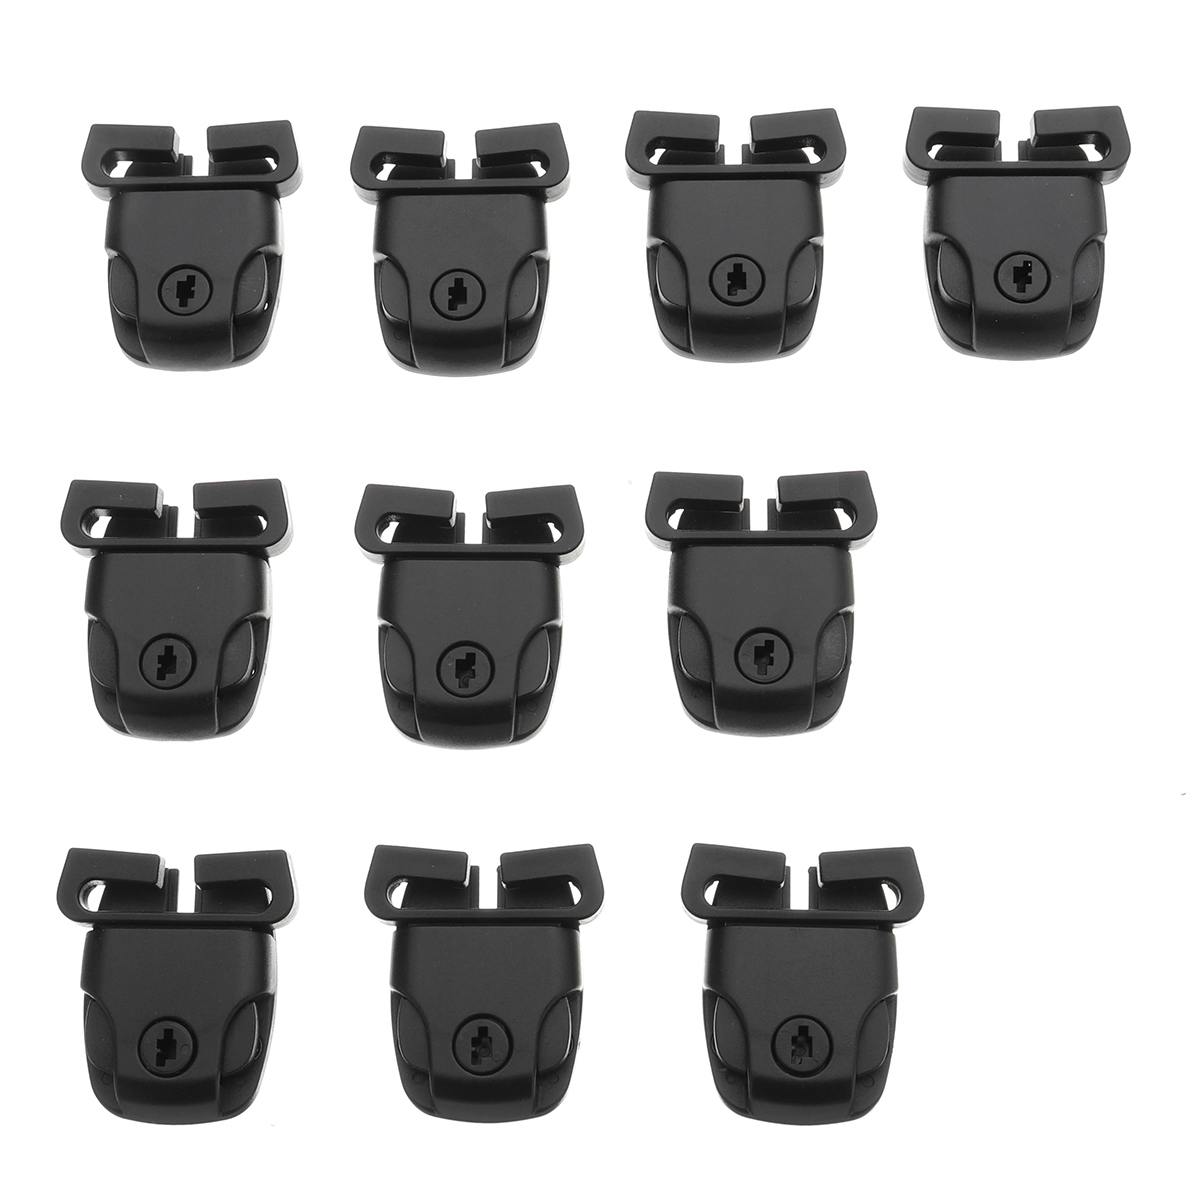 100PCS Spa Hot Tub Cover Broken Latch Repair Kit Clip Lock with Key and Hardware with screw100PCS Spa Hot Tub Cover Broken Latch Repair Kit Clip Lock with Key and Hardware with screw